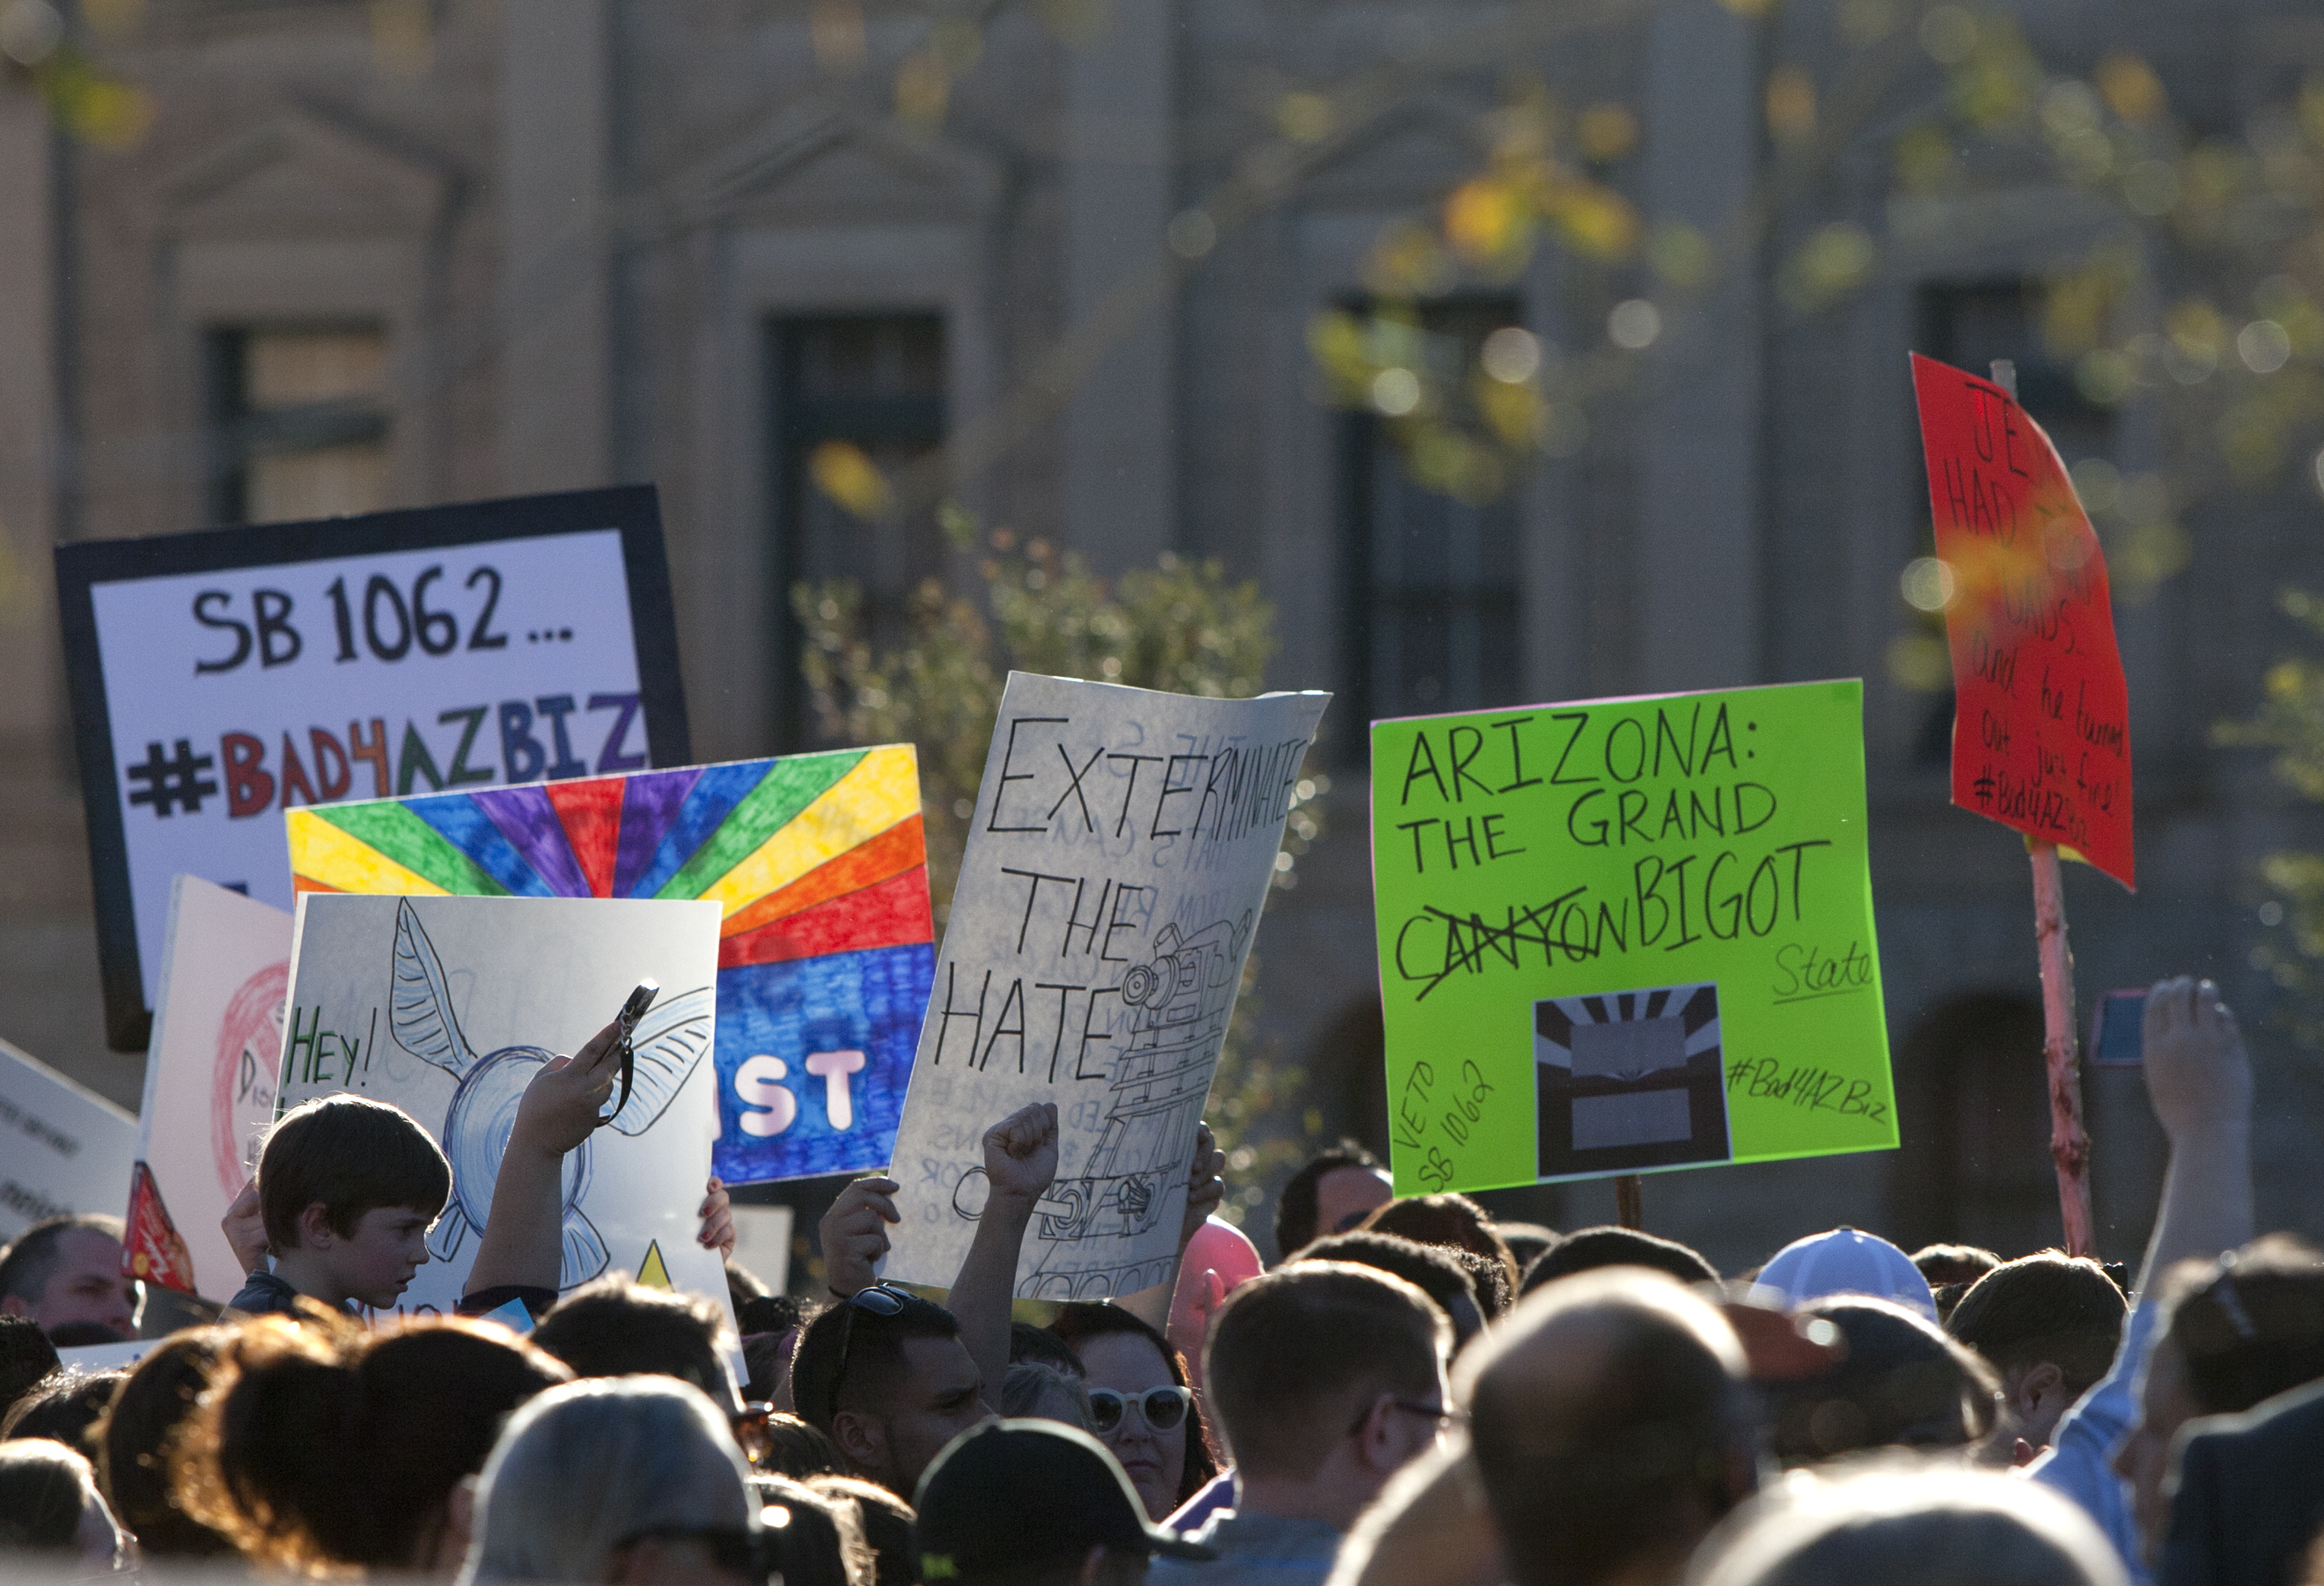 Opponents of the SB1062 urged Gov. Brewer to veto the bill during a protest rally at the state capitol, Friday, Feb. 21, 2014.